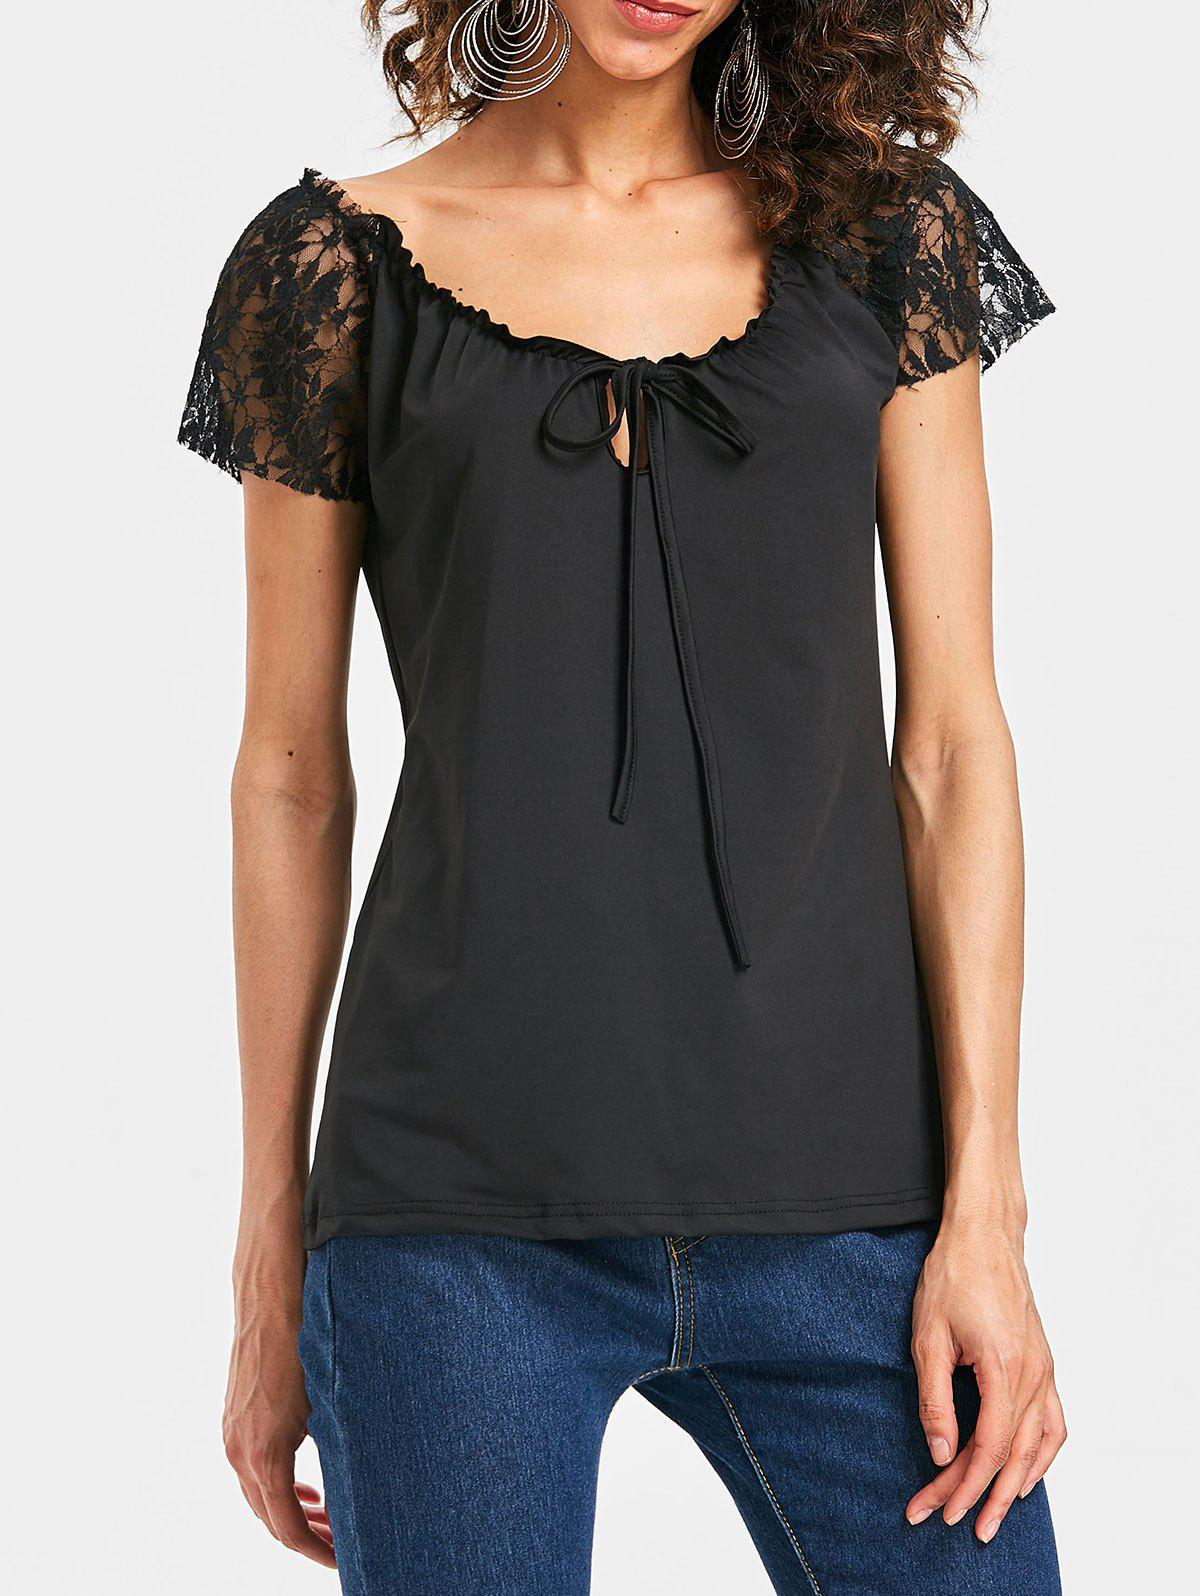 Scoop Neck Lace Insert T-shirt - BLACK 2XL